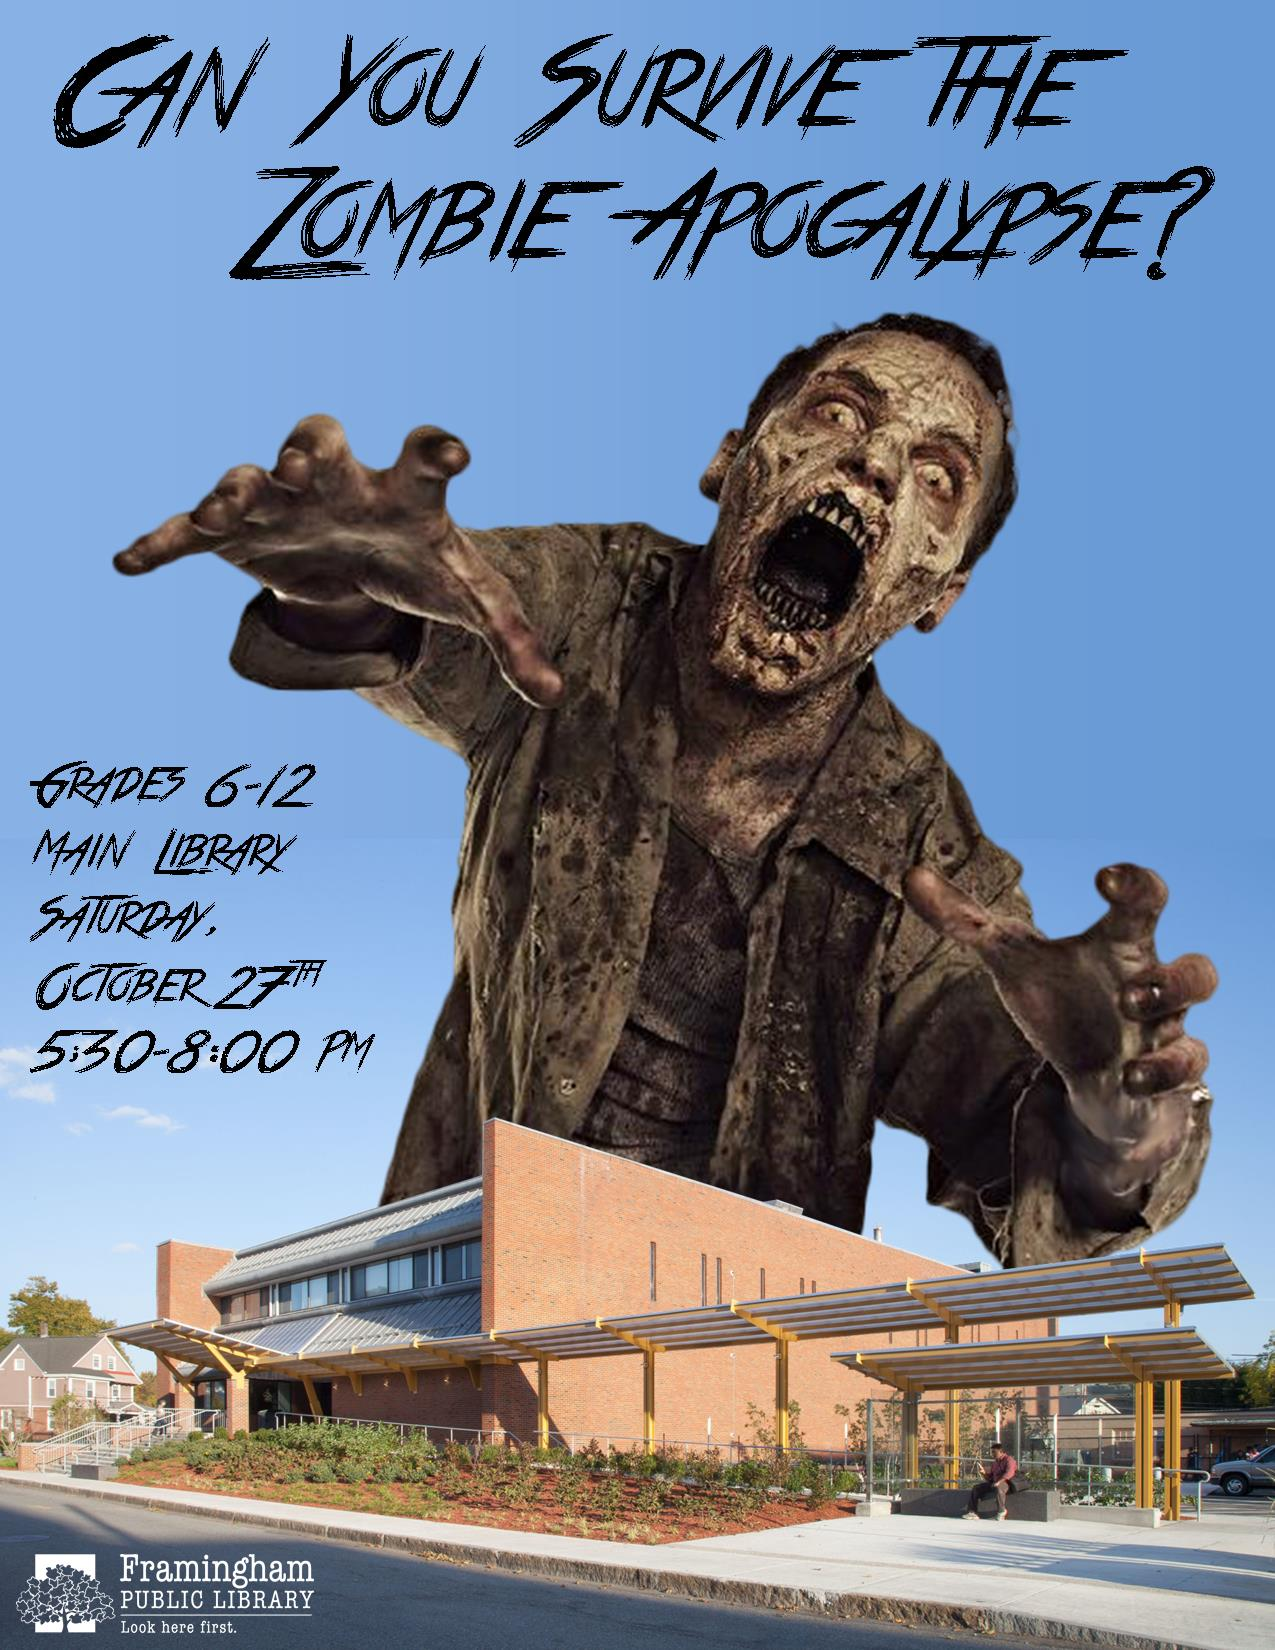 Can You Survive the Zombie Apocalypse?! - After Hours Program thumbnail Photo